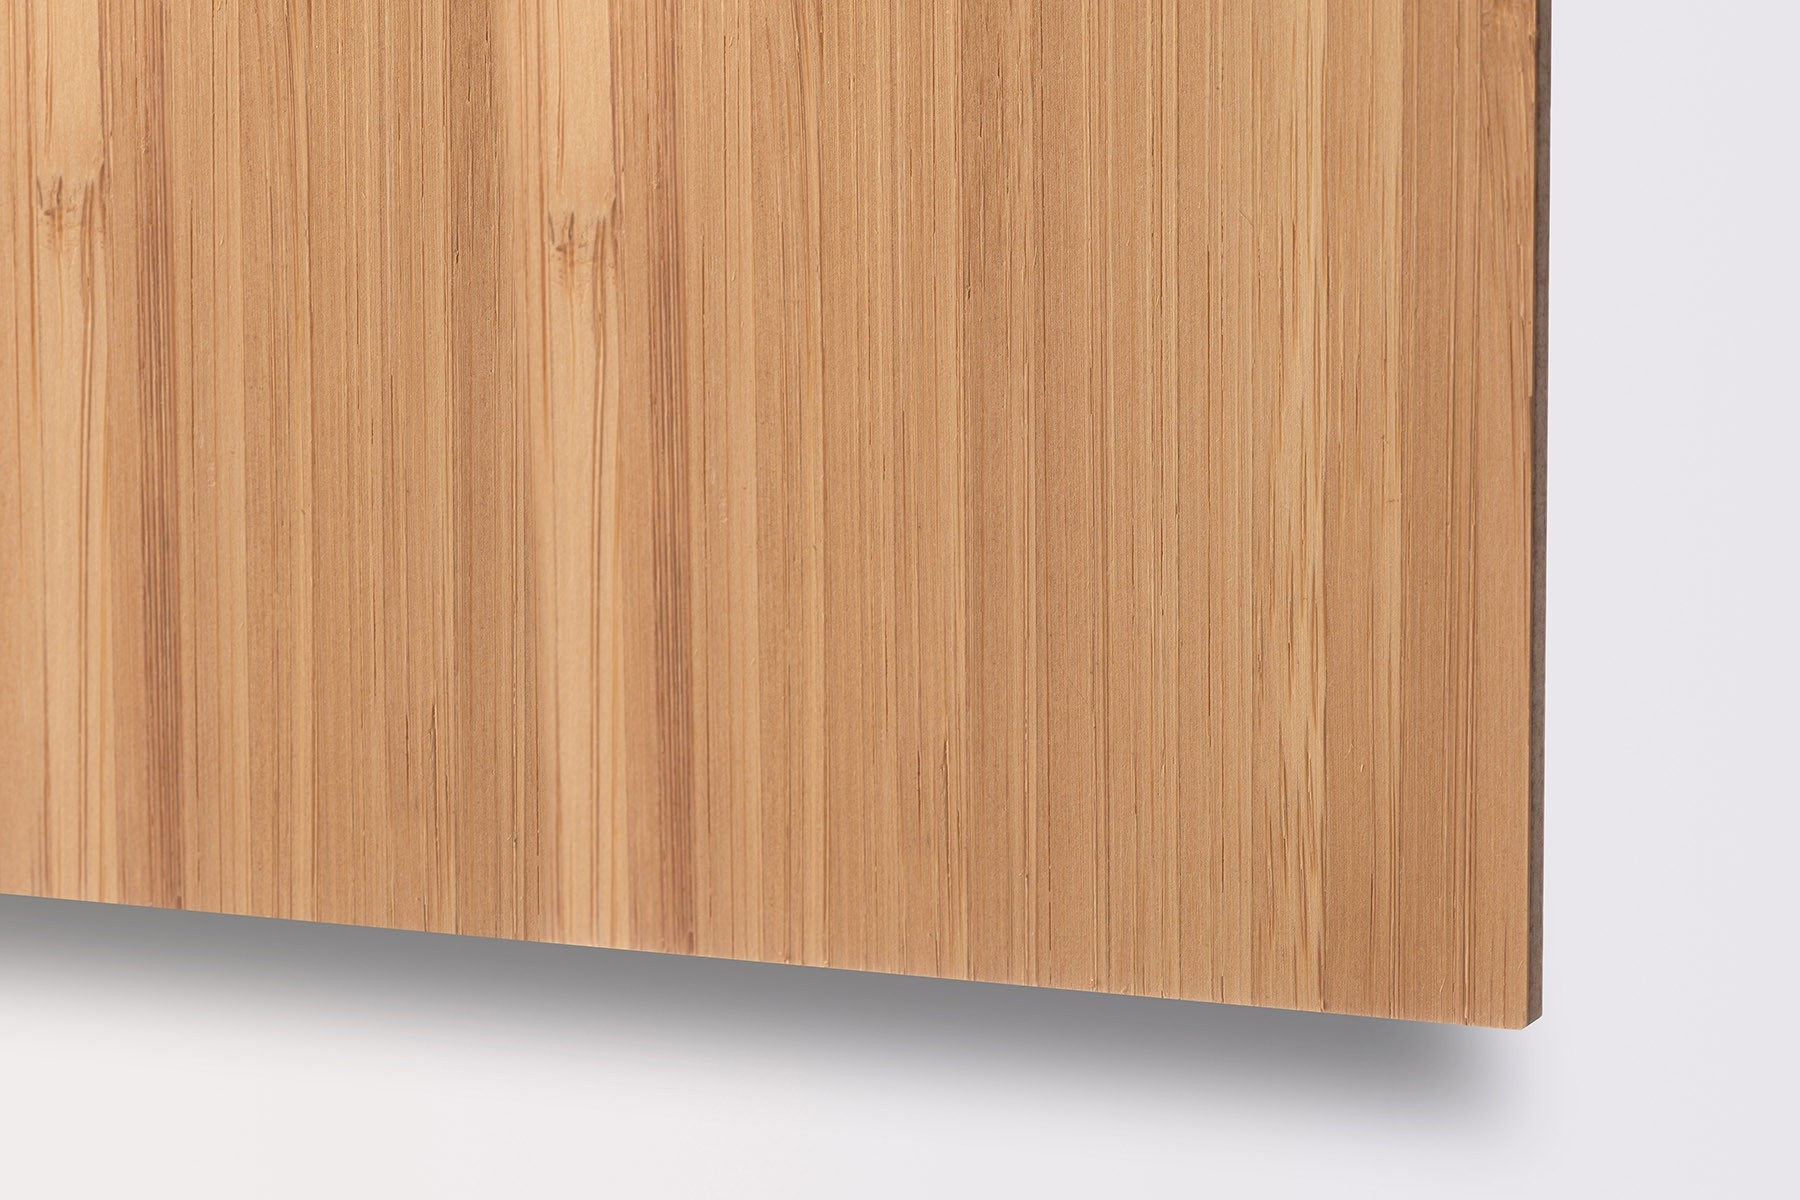 Laminated Bamboo Plywood Wooden Sheet Of 1 5mm 2mm 3mm 4mm 5mm 6mm Htr Well Nature Bamboo